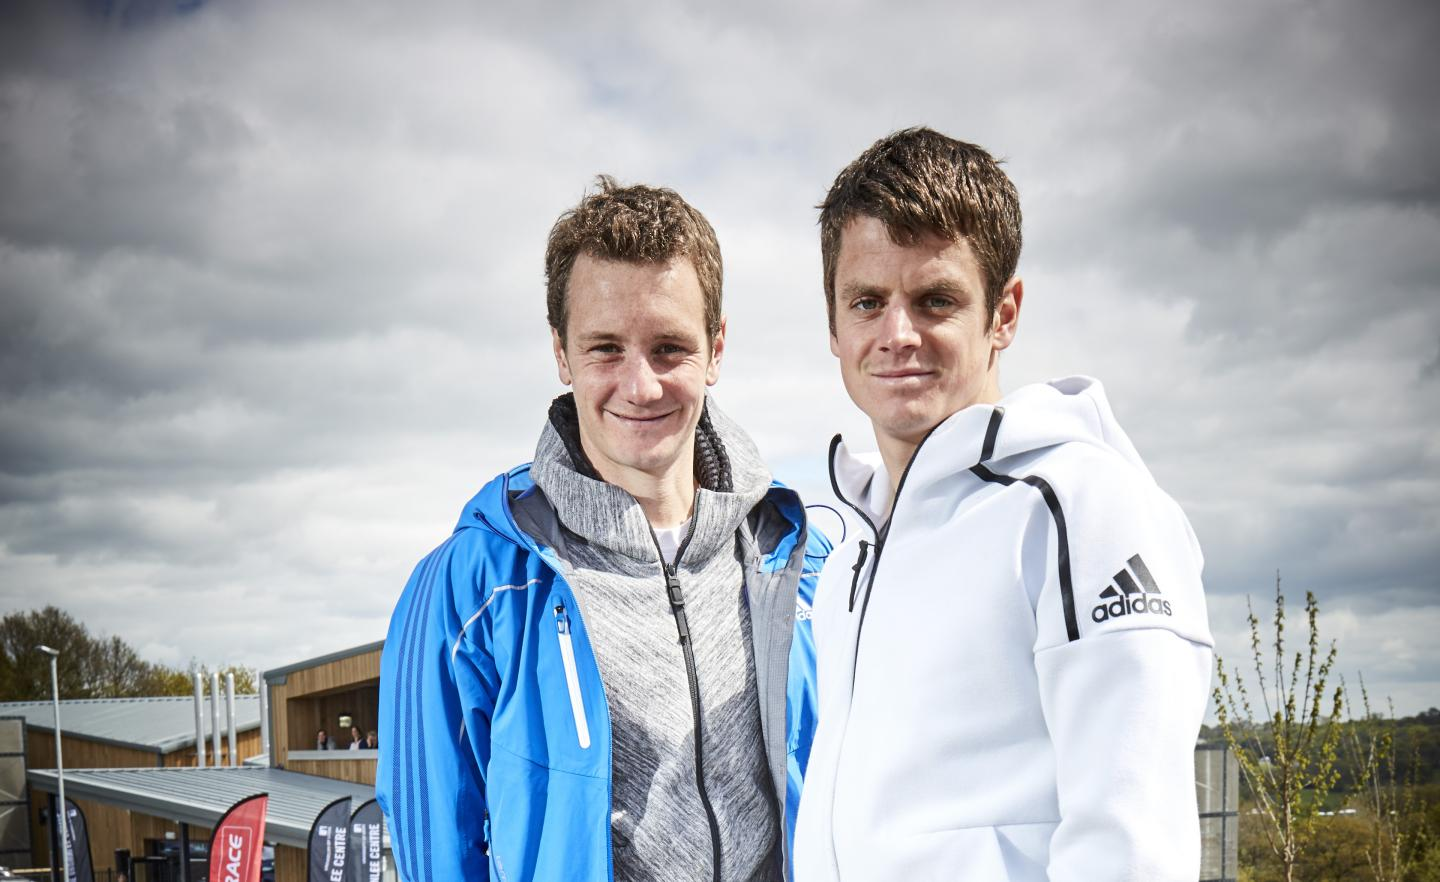 Co-authors of the research Alistair and Jonny Brownlee